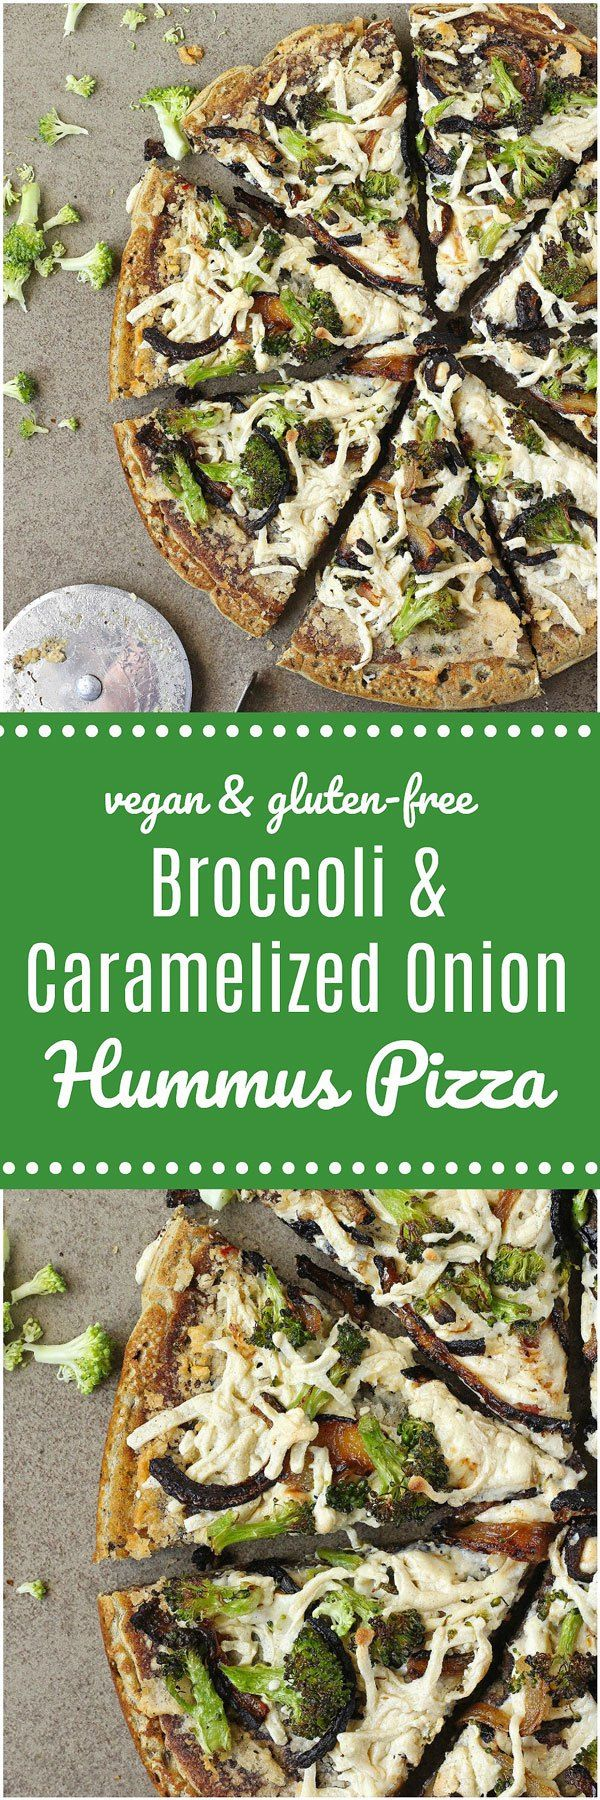 Broccoli and Caramelized Onion Hummus Pizza - This Broccoli and Caramelized Onion Hummus Pizza is 100% vegan and gluten-free! Steamed broccoli, caramelized onions and hummus is laid on top of a simple homemade lentil pizza crust before being sprinkled with dairy-free cheese. I would use edens canned beans because they are already pressure cooked for low Lectin